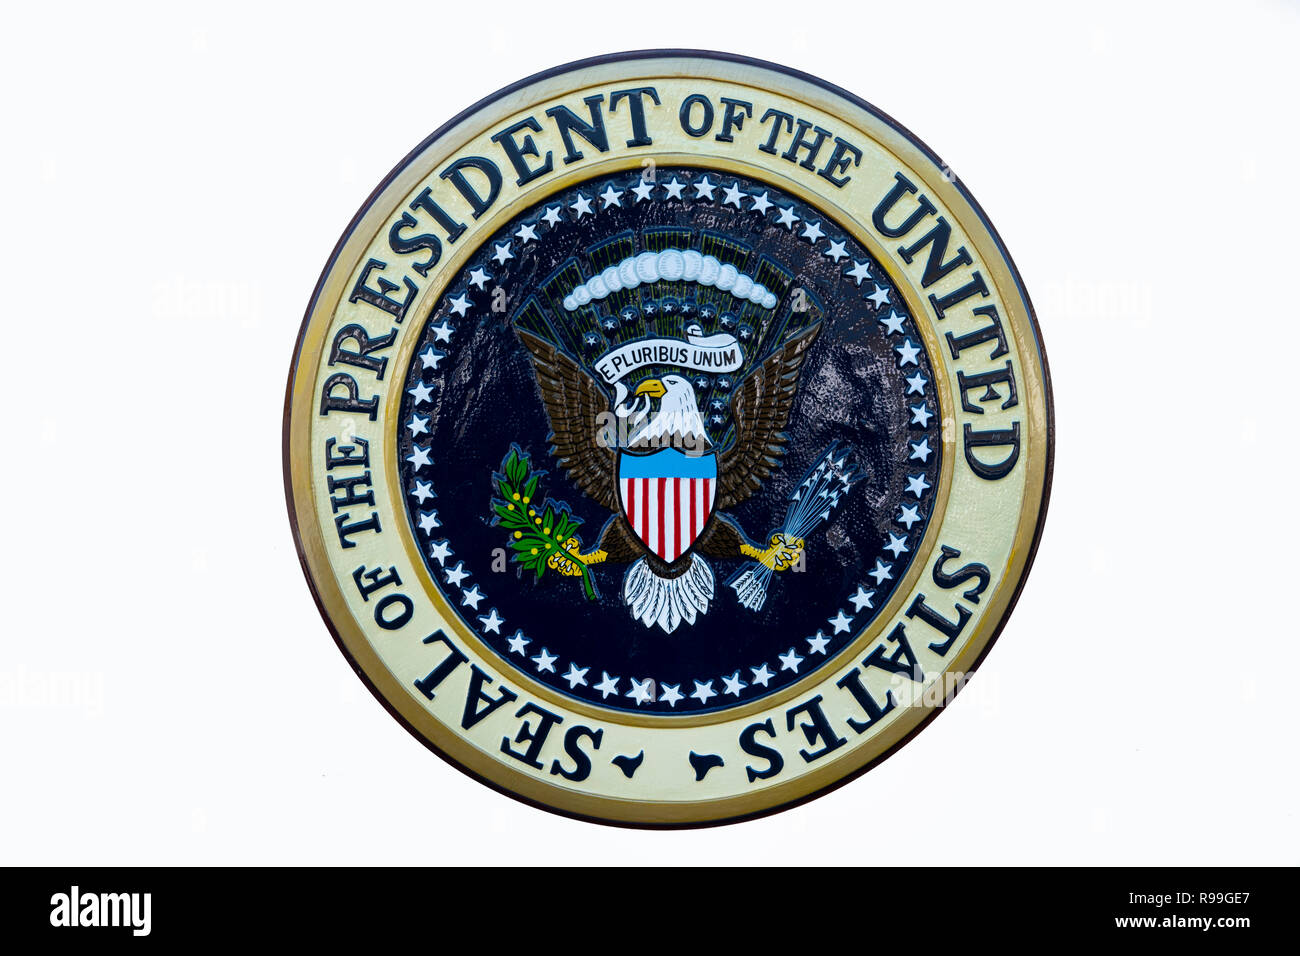 1b97c0b1cb36d7 USA The Seal of the President of the United States of America Presidential  emblem - Stock